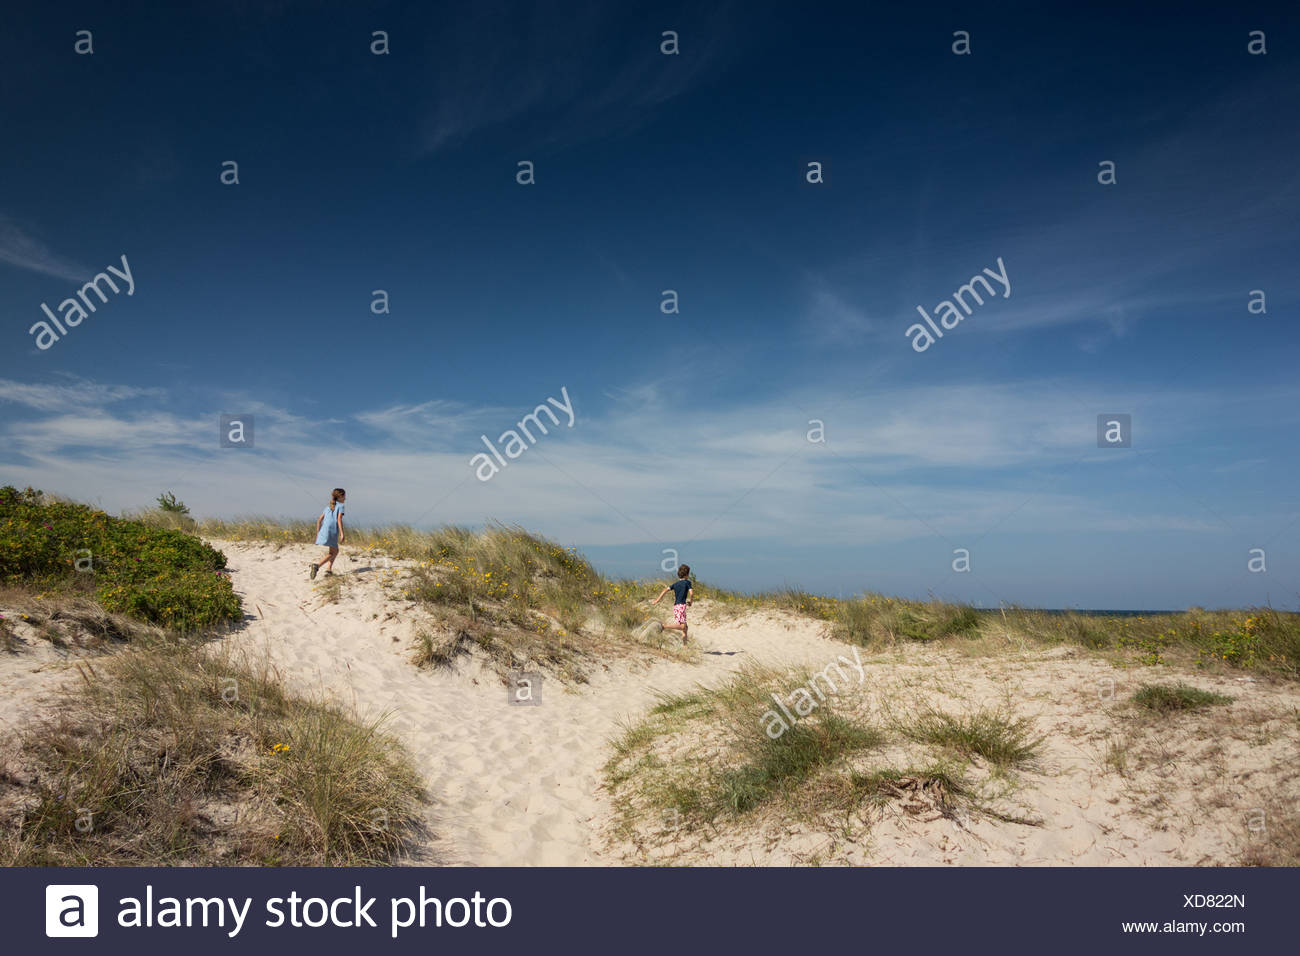 Brother and sister running over sand dunes - Stock Image